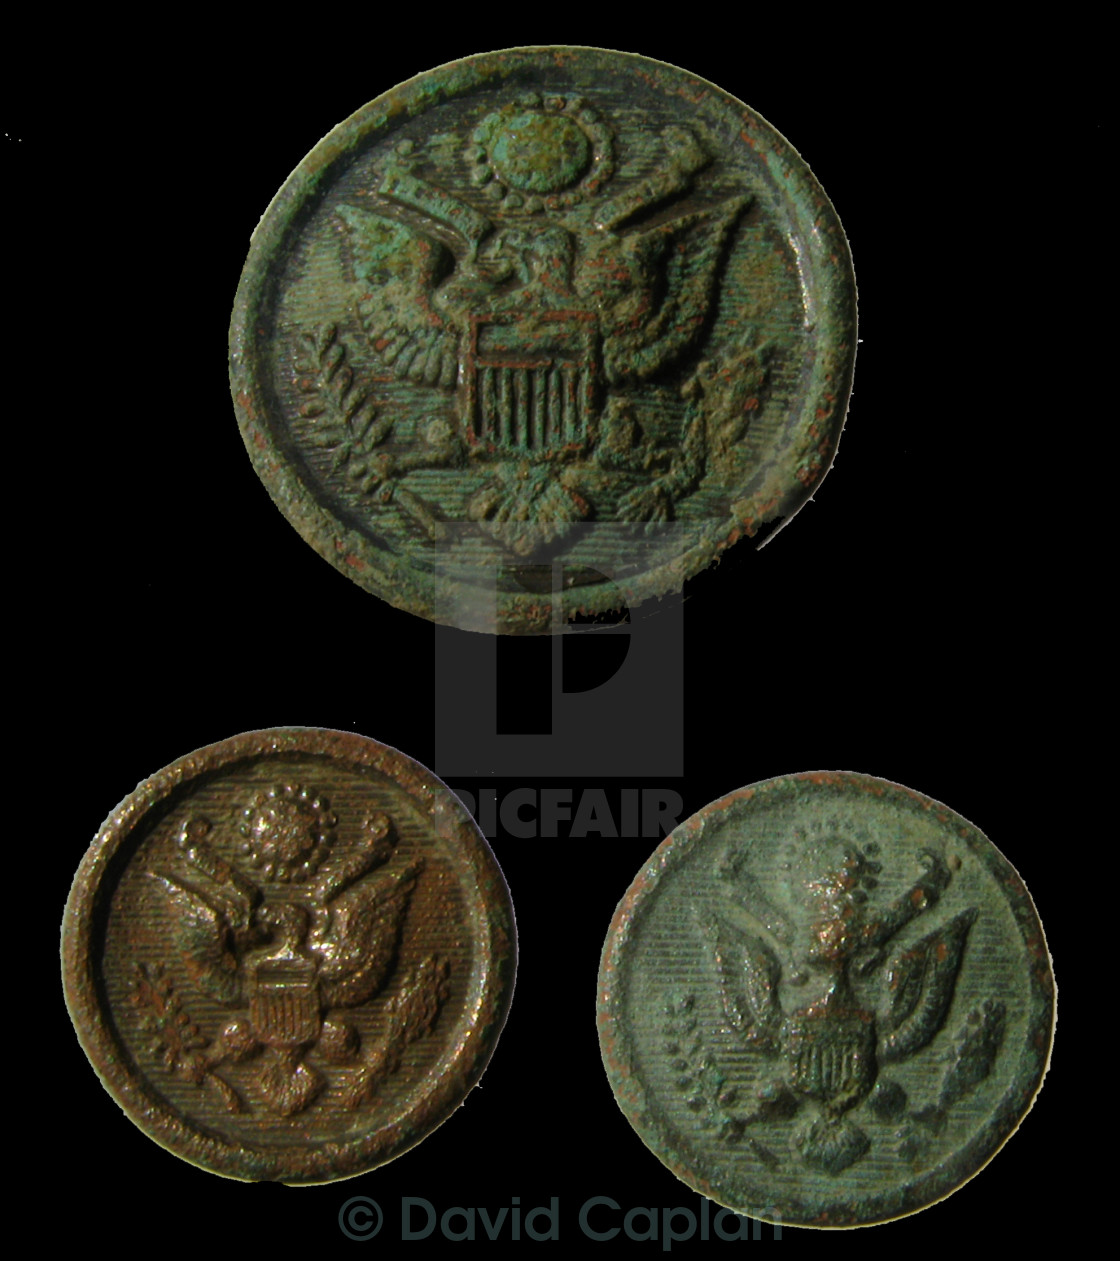 WW2 USA Military Buttons - License, download or print for